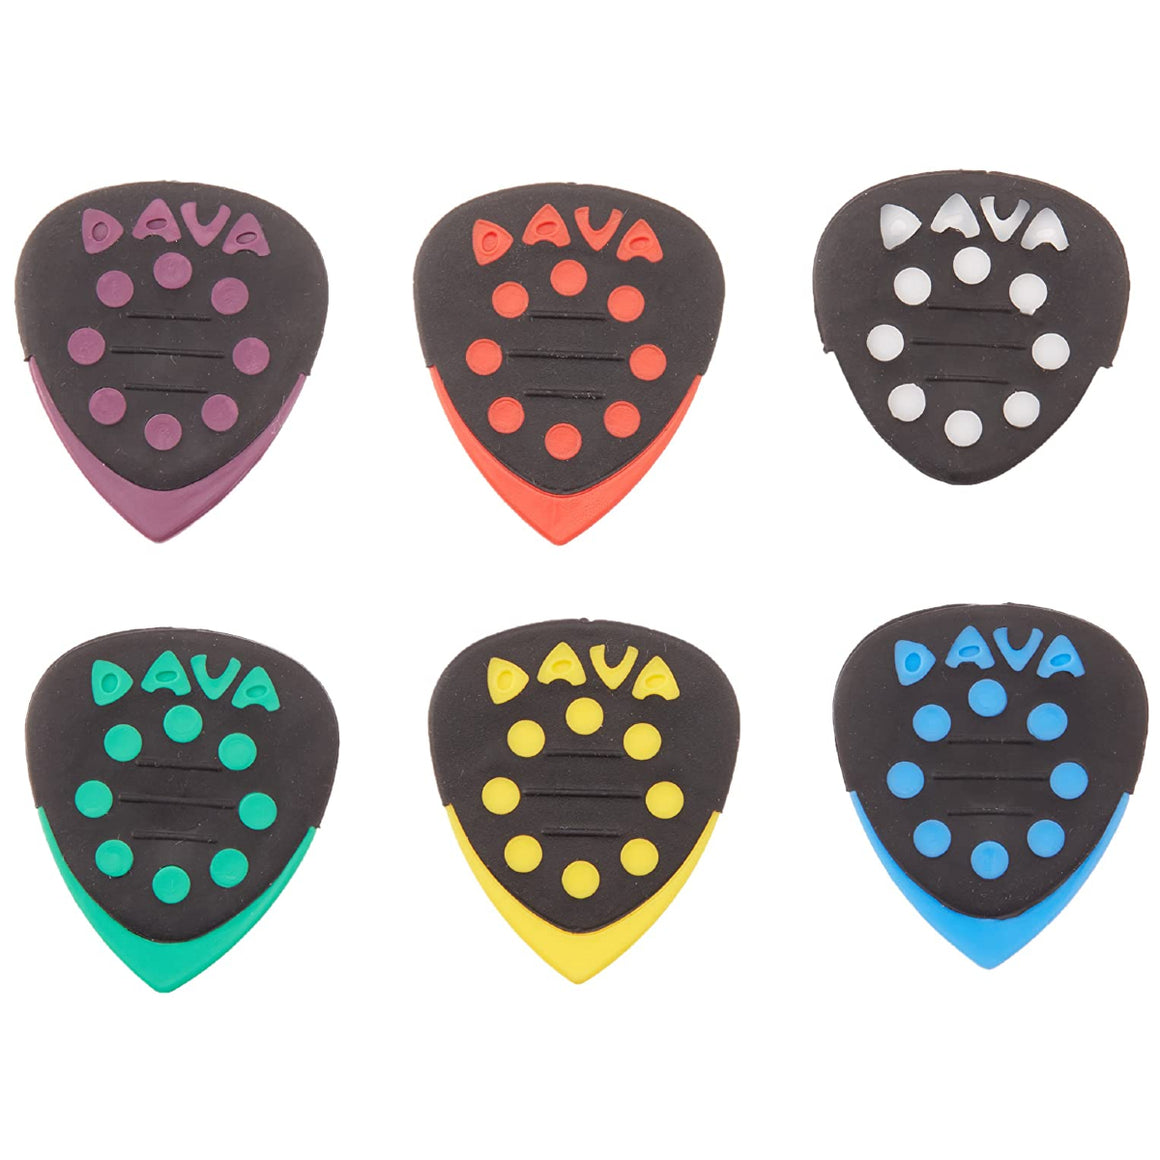 Dava 6024 Grip Tip 6pk Assorted Colors